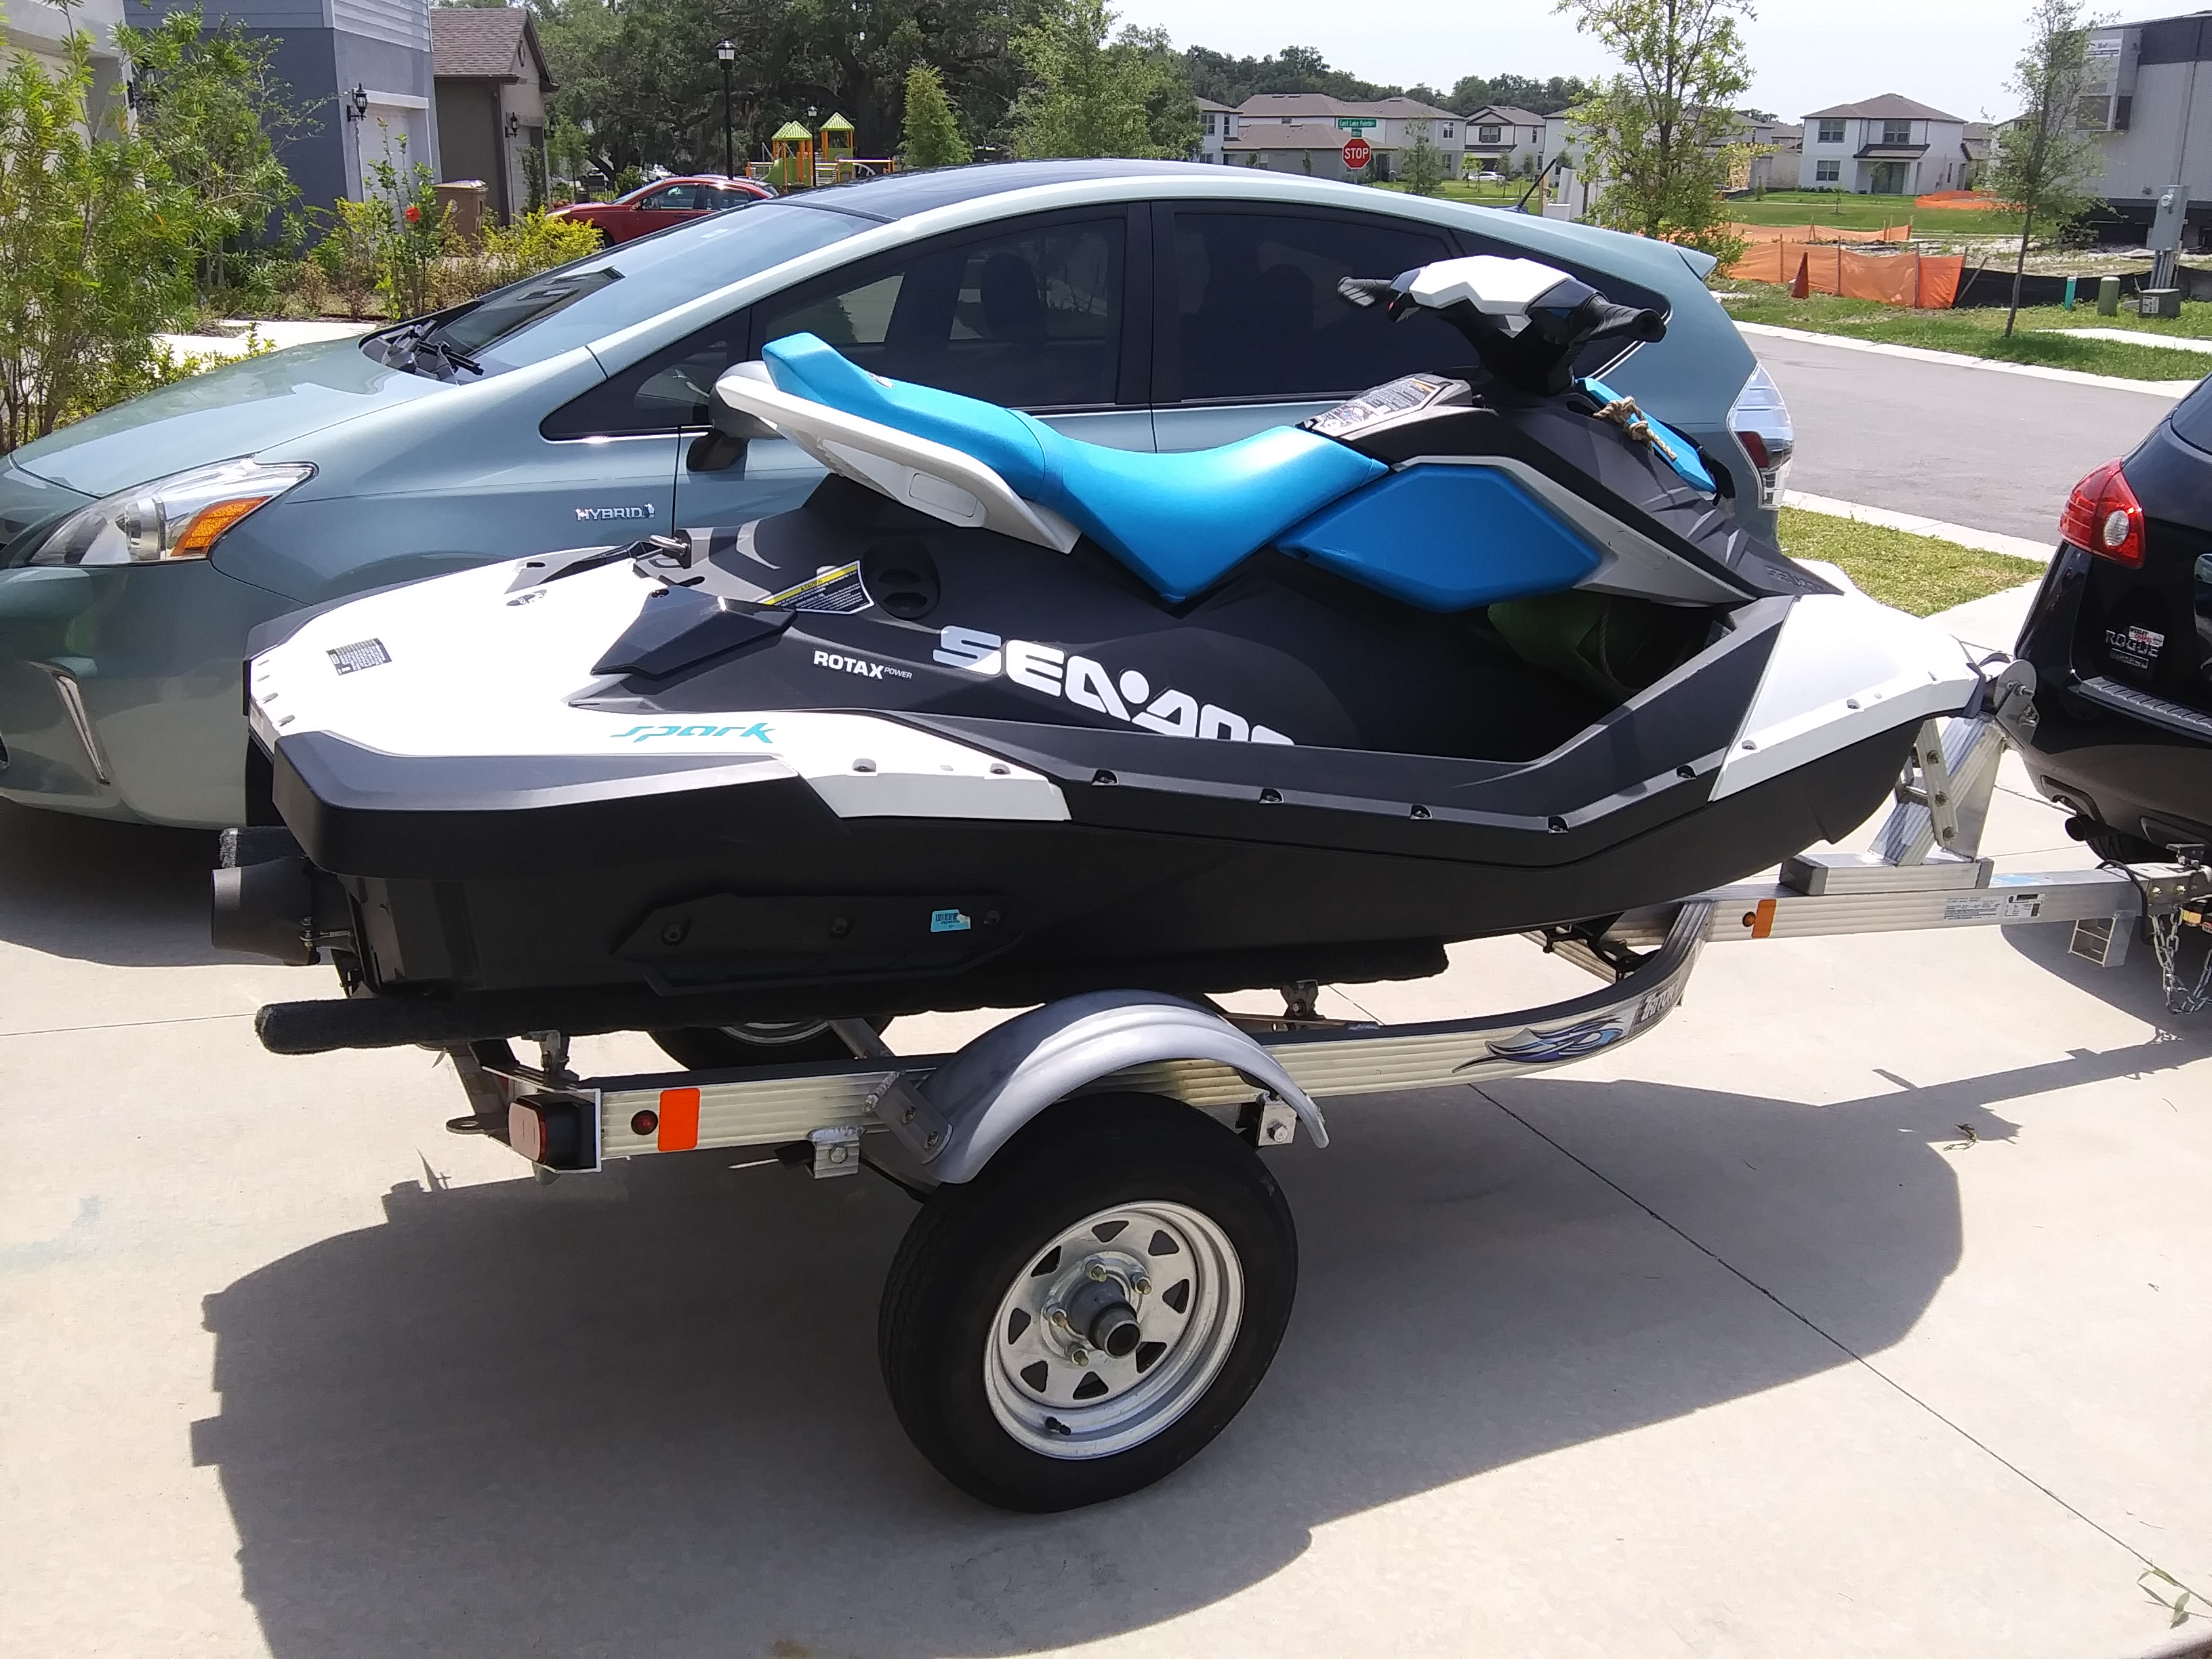 Comes With a Trailer! boat rentals Florida KISSIMMEE Florida  Sea-Doo Spark 2020 9